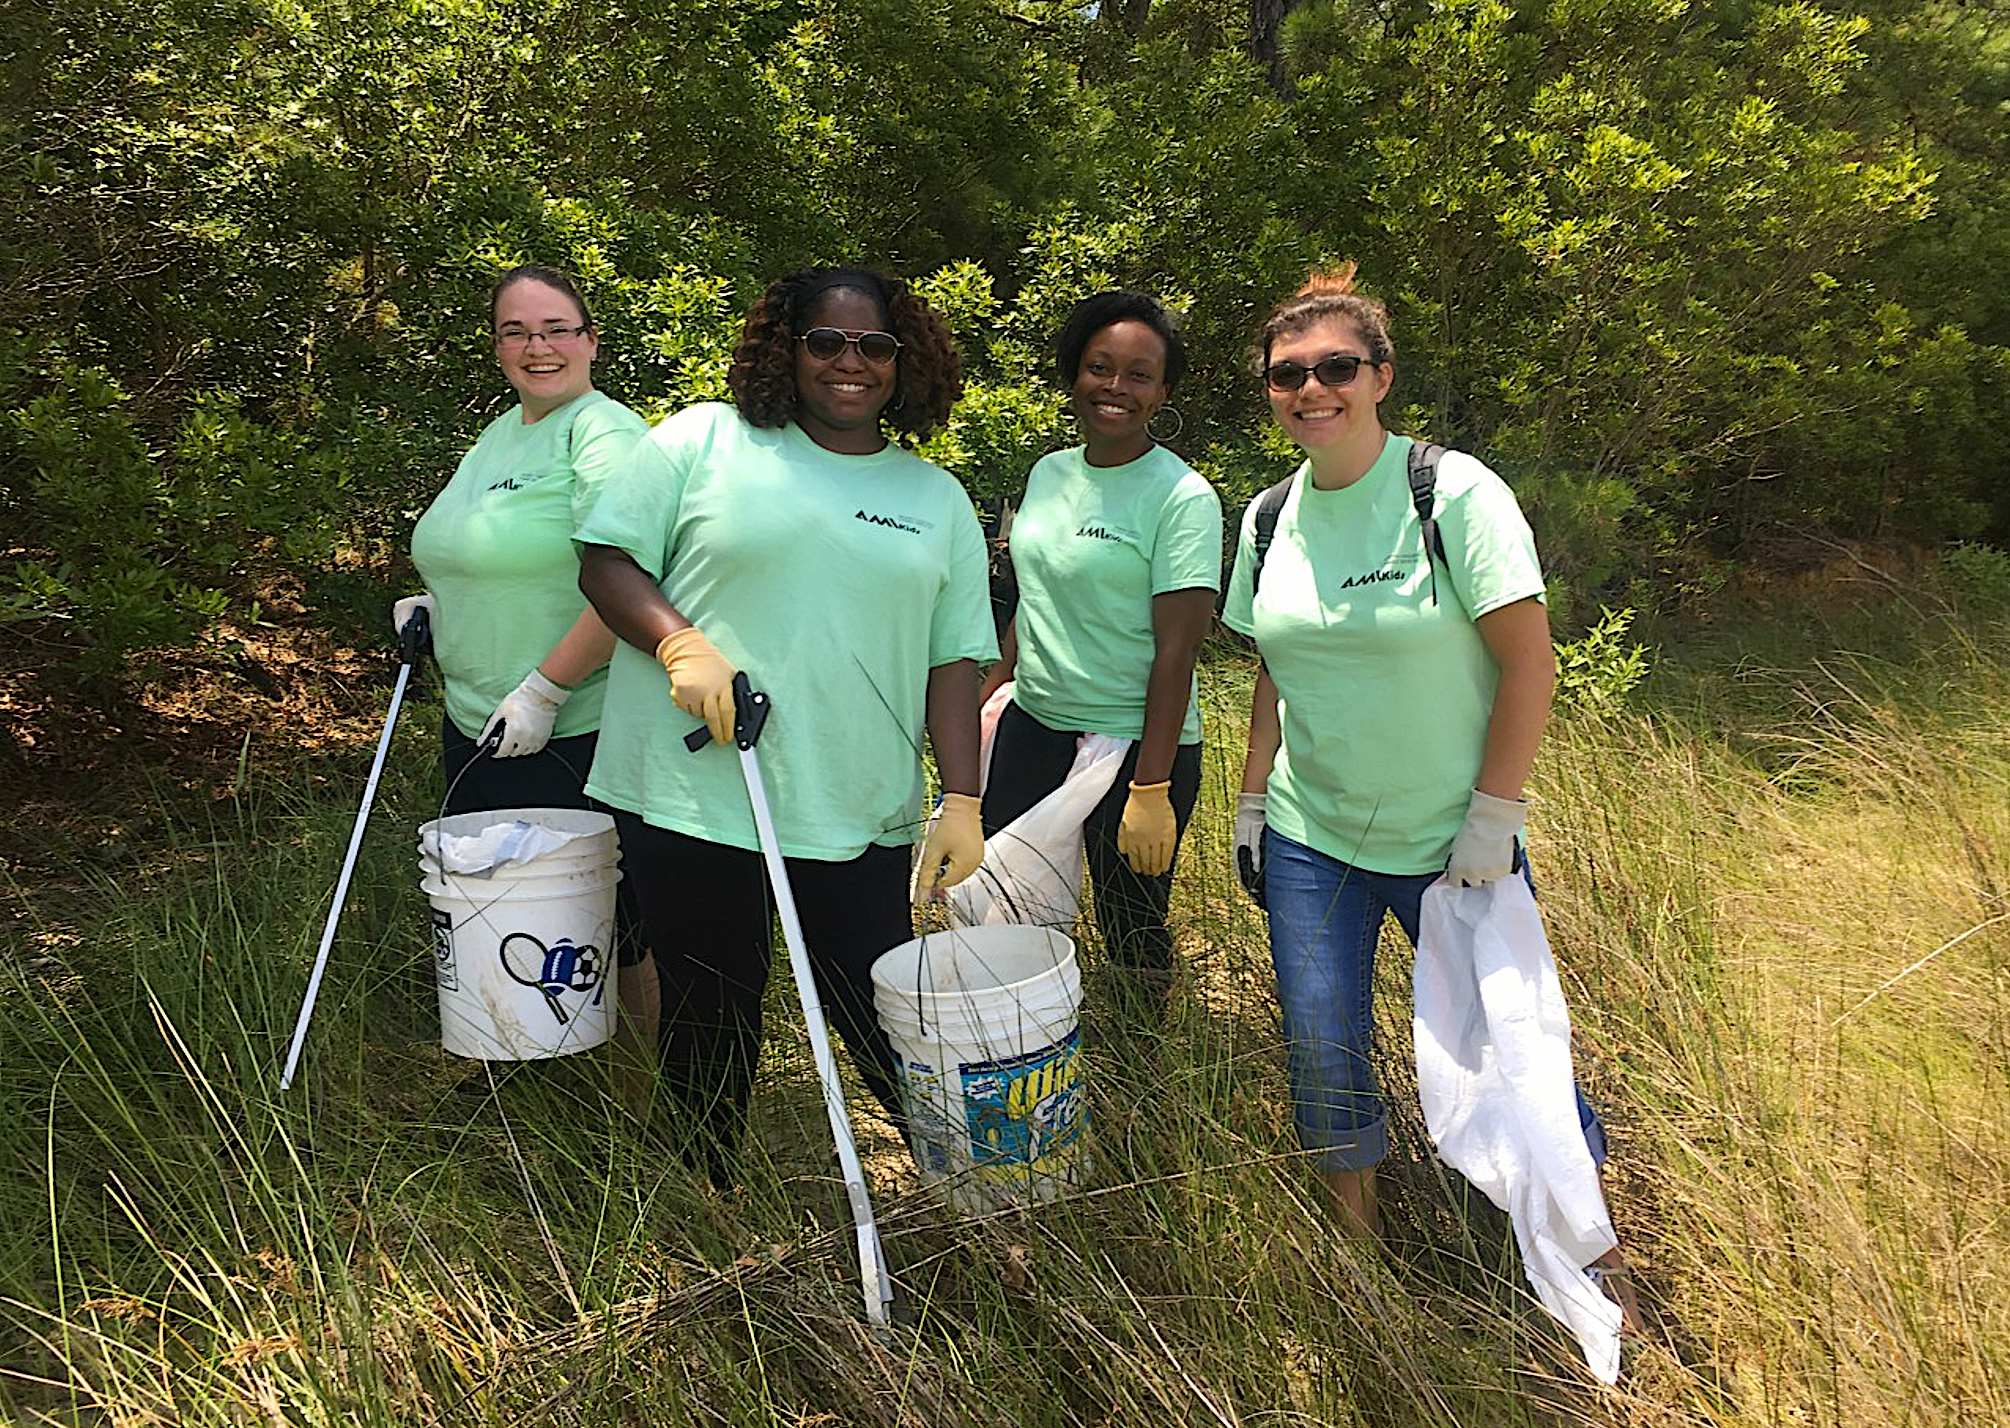 Organizing cleanups is a fun and easy way for community members to reduce marine debris and beautify the coasts. Credit: Rachel Bisesi.